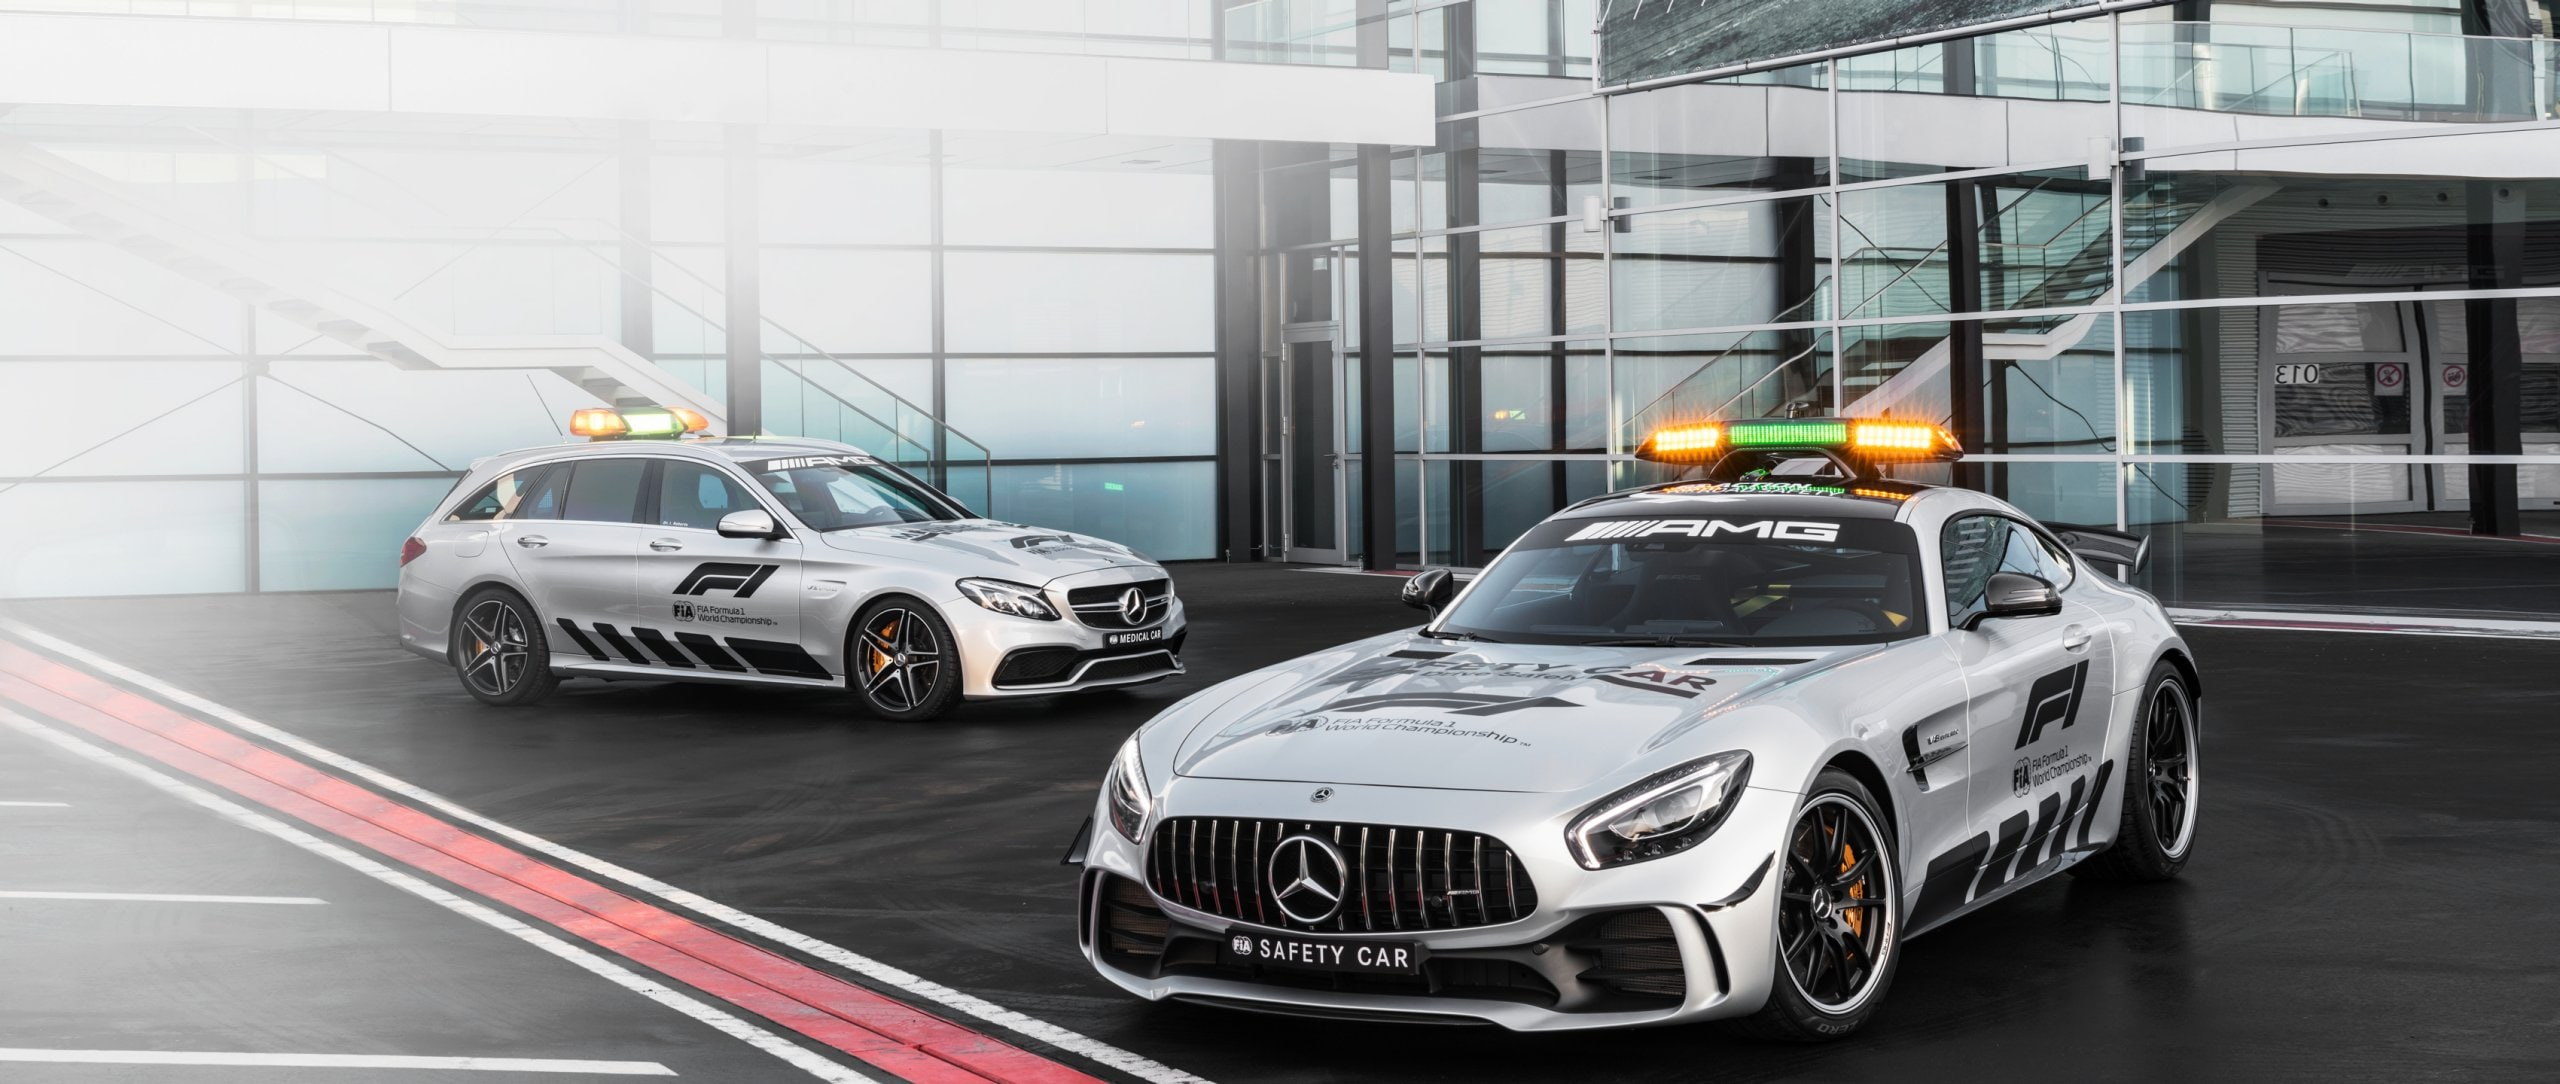 Mercedes-Benz Safety Cars.